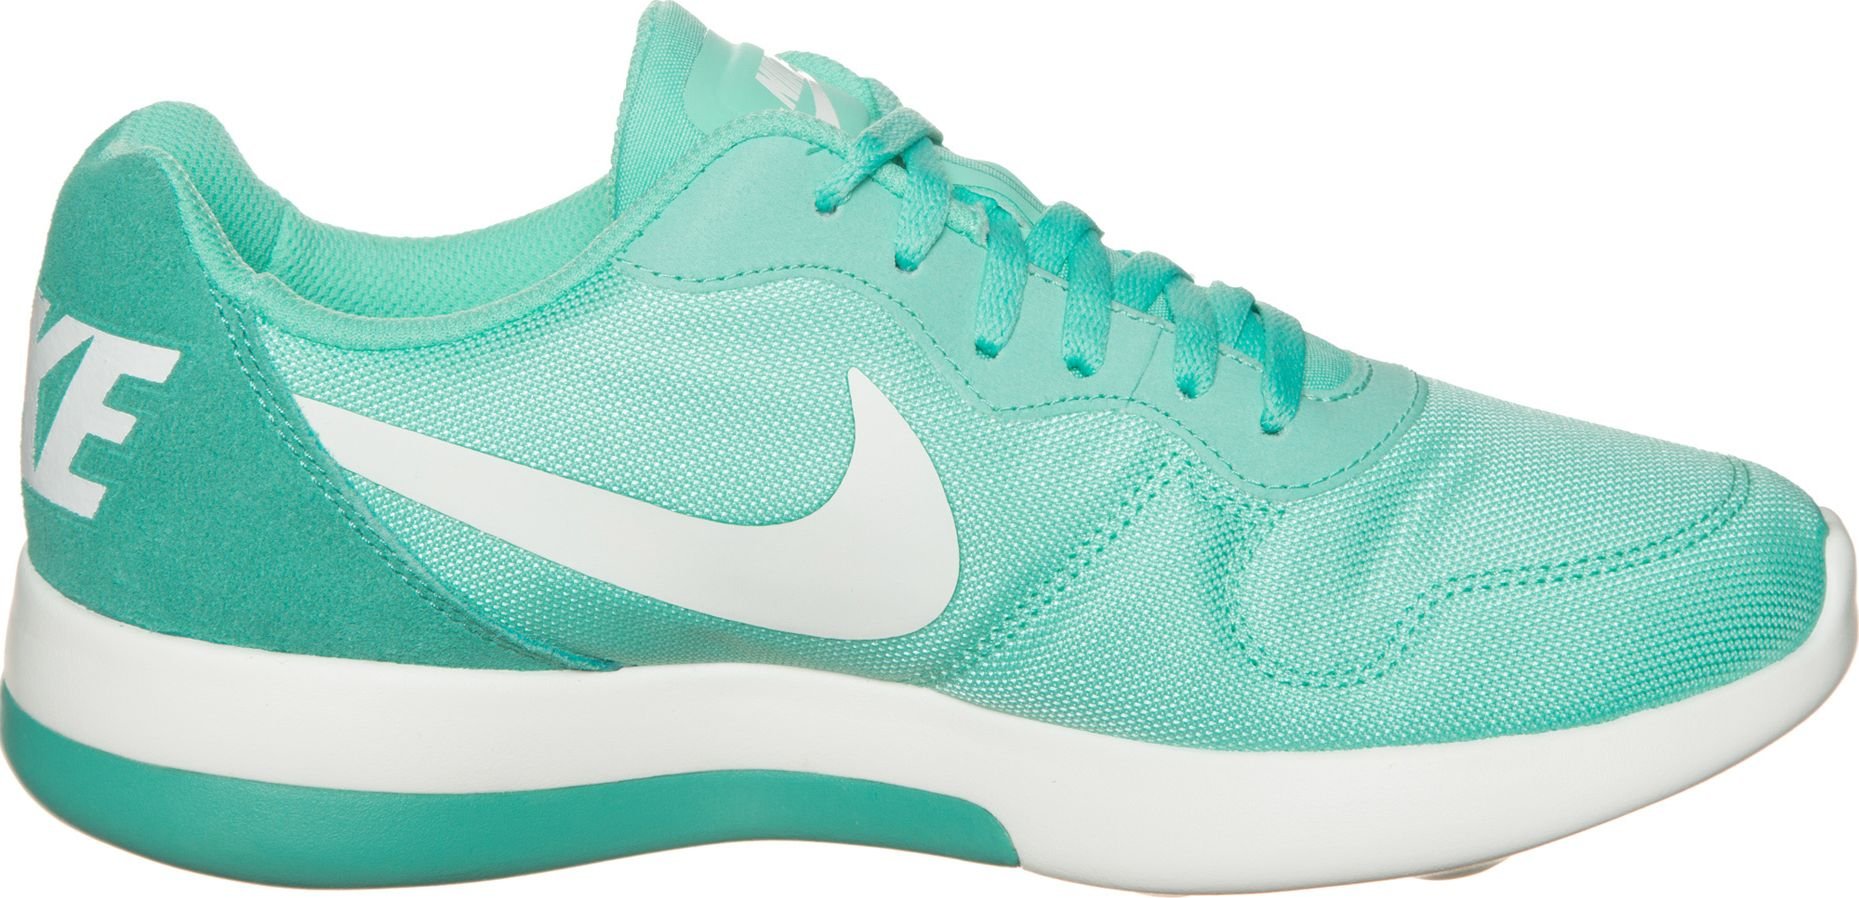 71f9a1ea5c Nike MD Runner 2 LW Hyper Turq Washed Teal ...